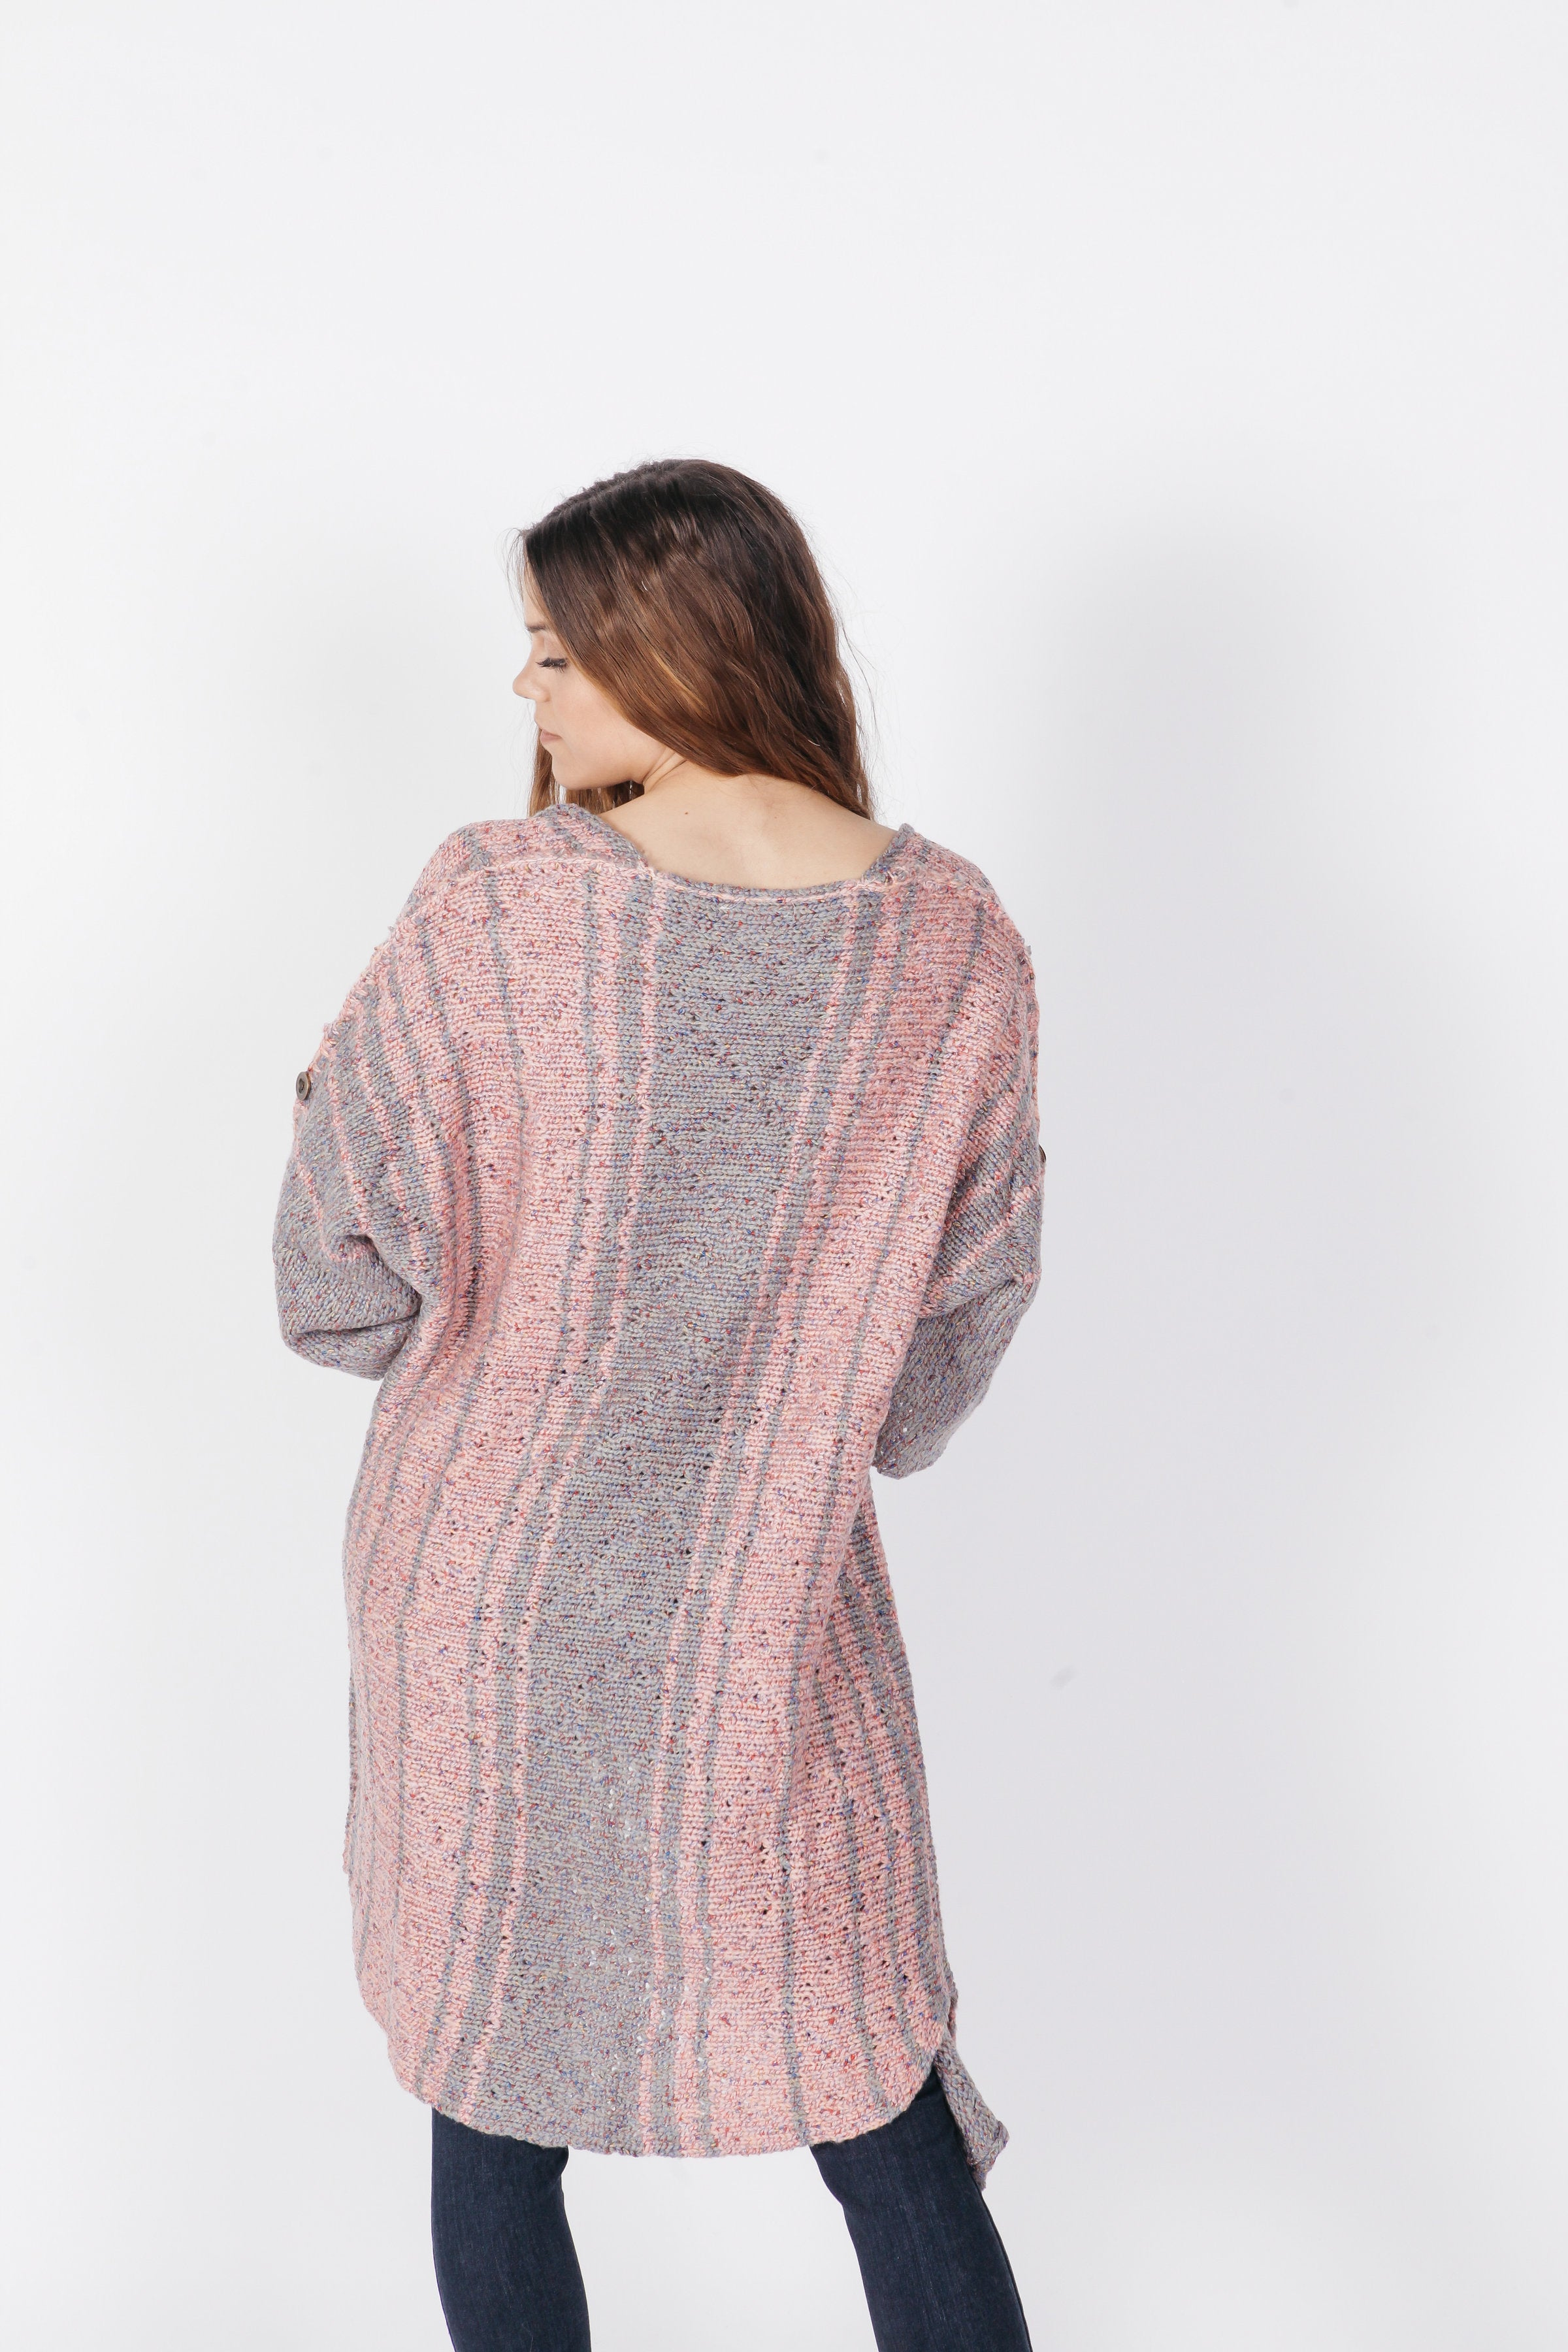 Holly Cardigan - Blush/Grey